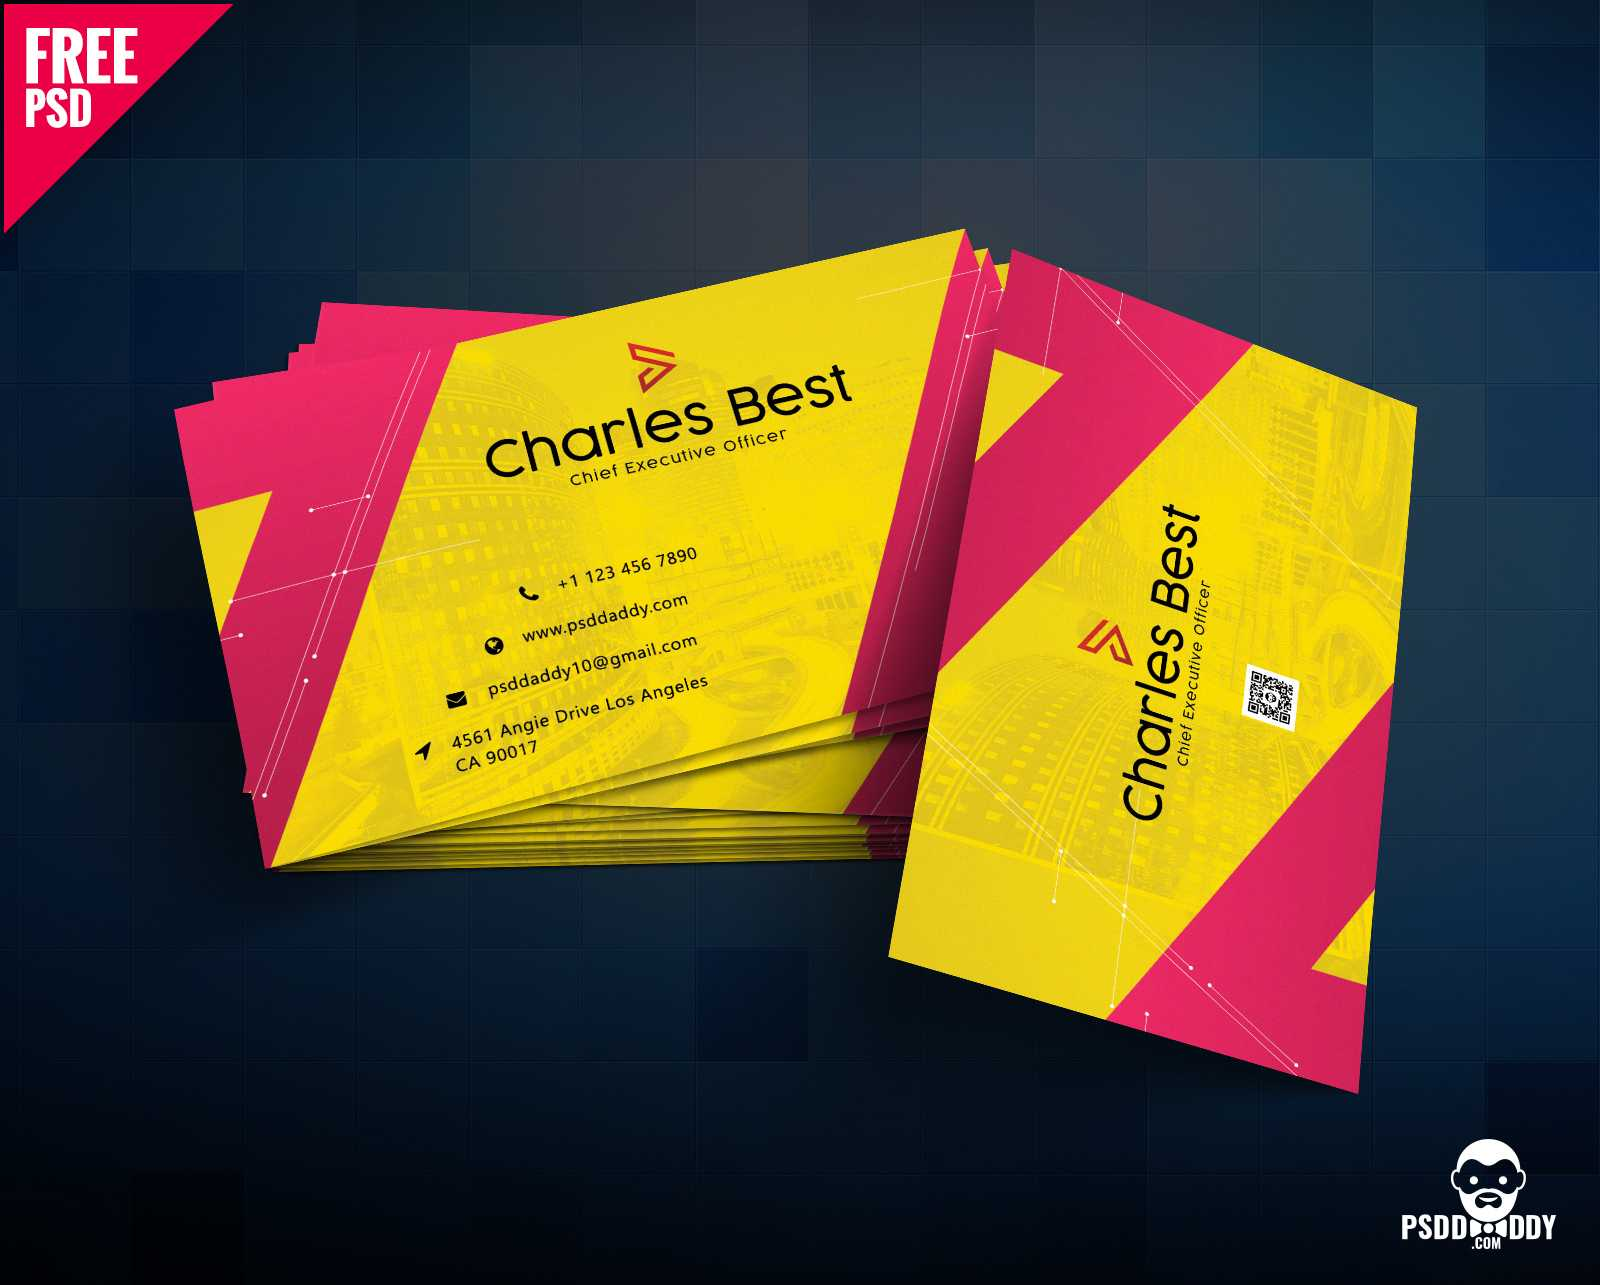 Download] Creative Business Card Free Psd | Psddaddy Within Photoshop Business Card Template With Bleed